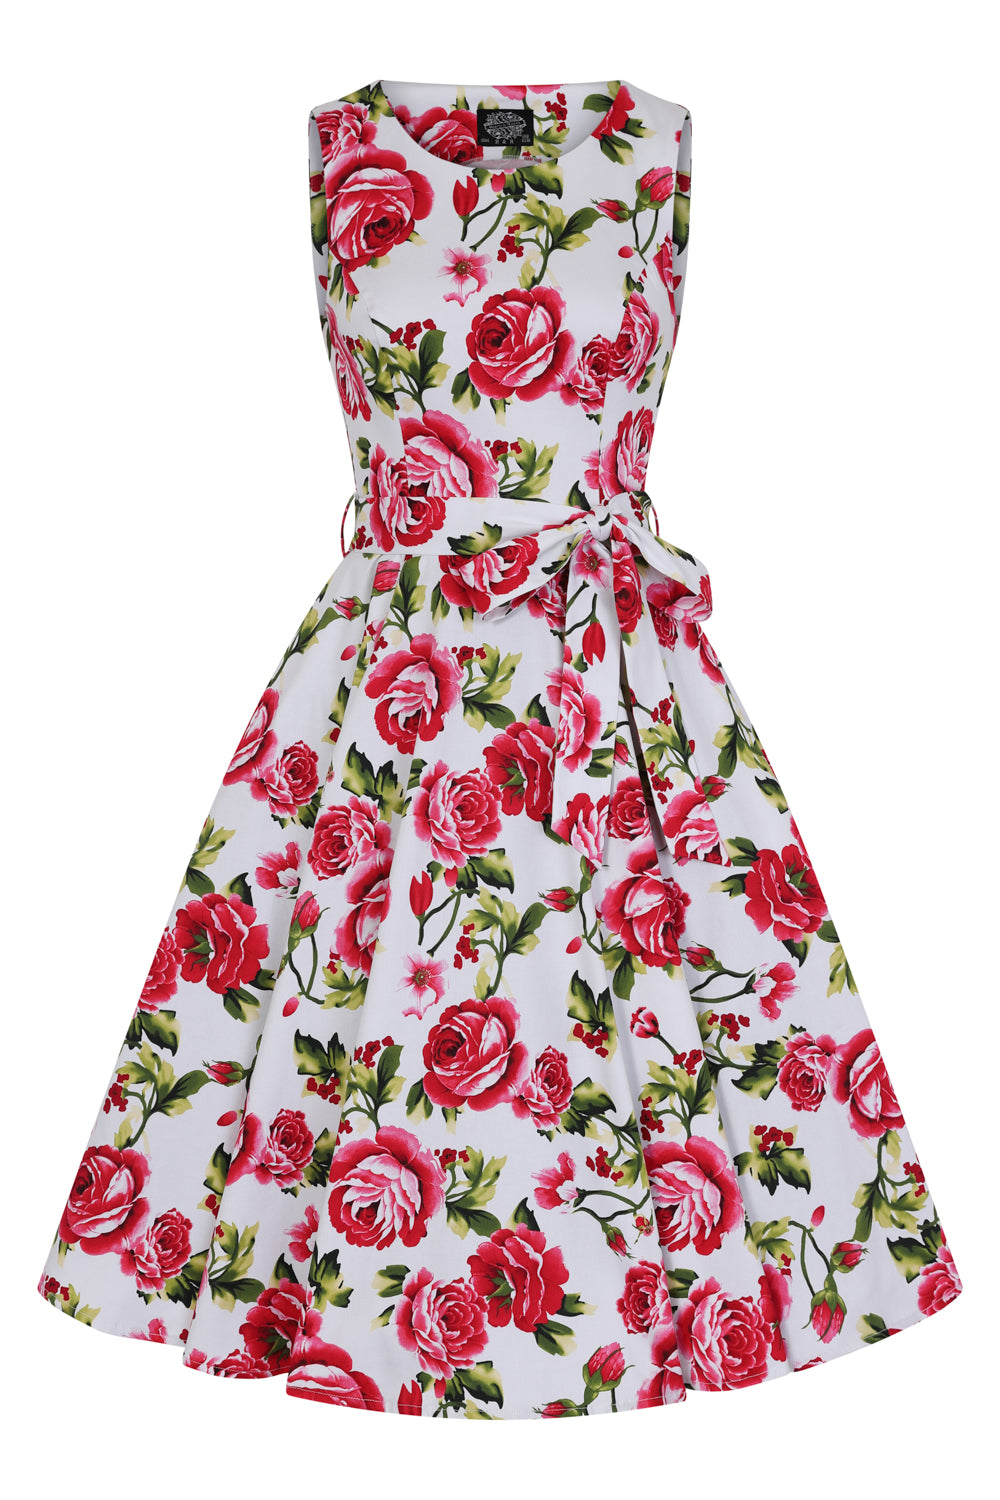 Sweet Rose Swing Dress Plus by H&R London